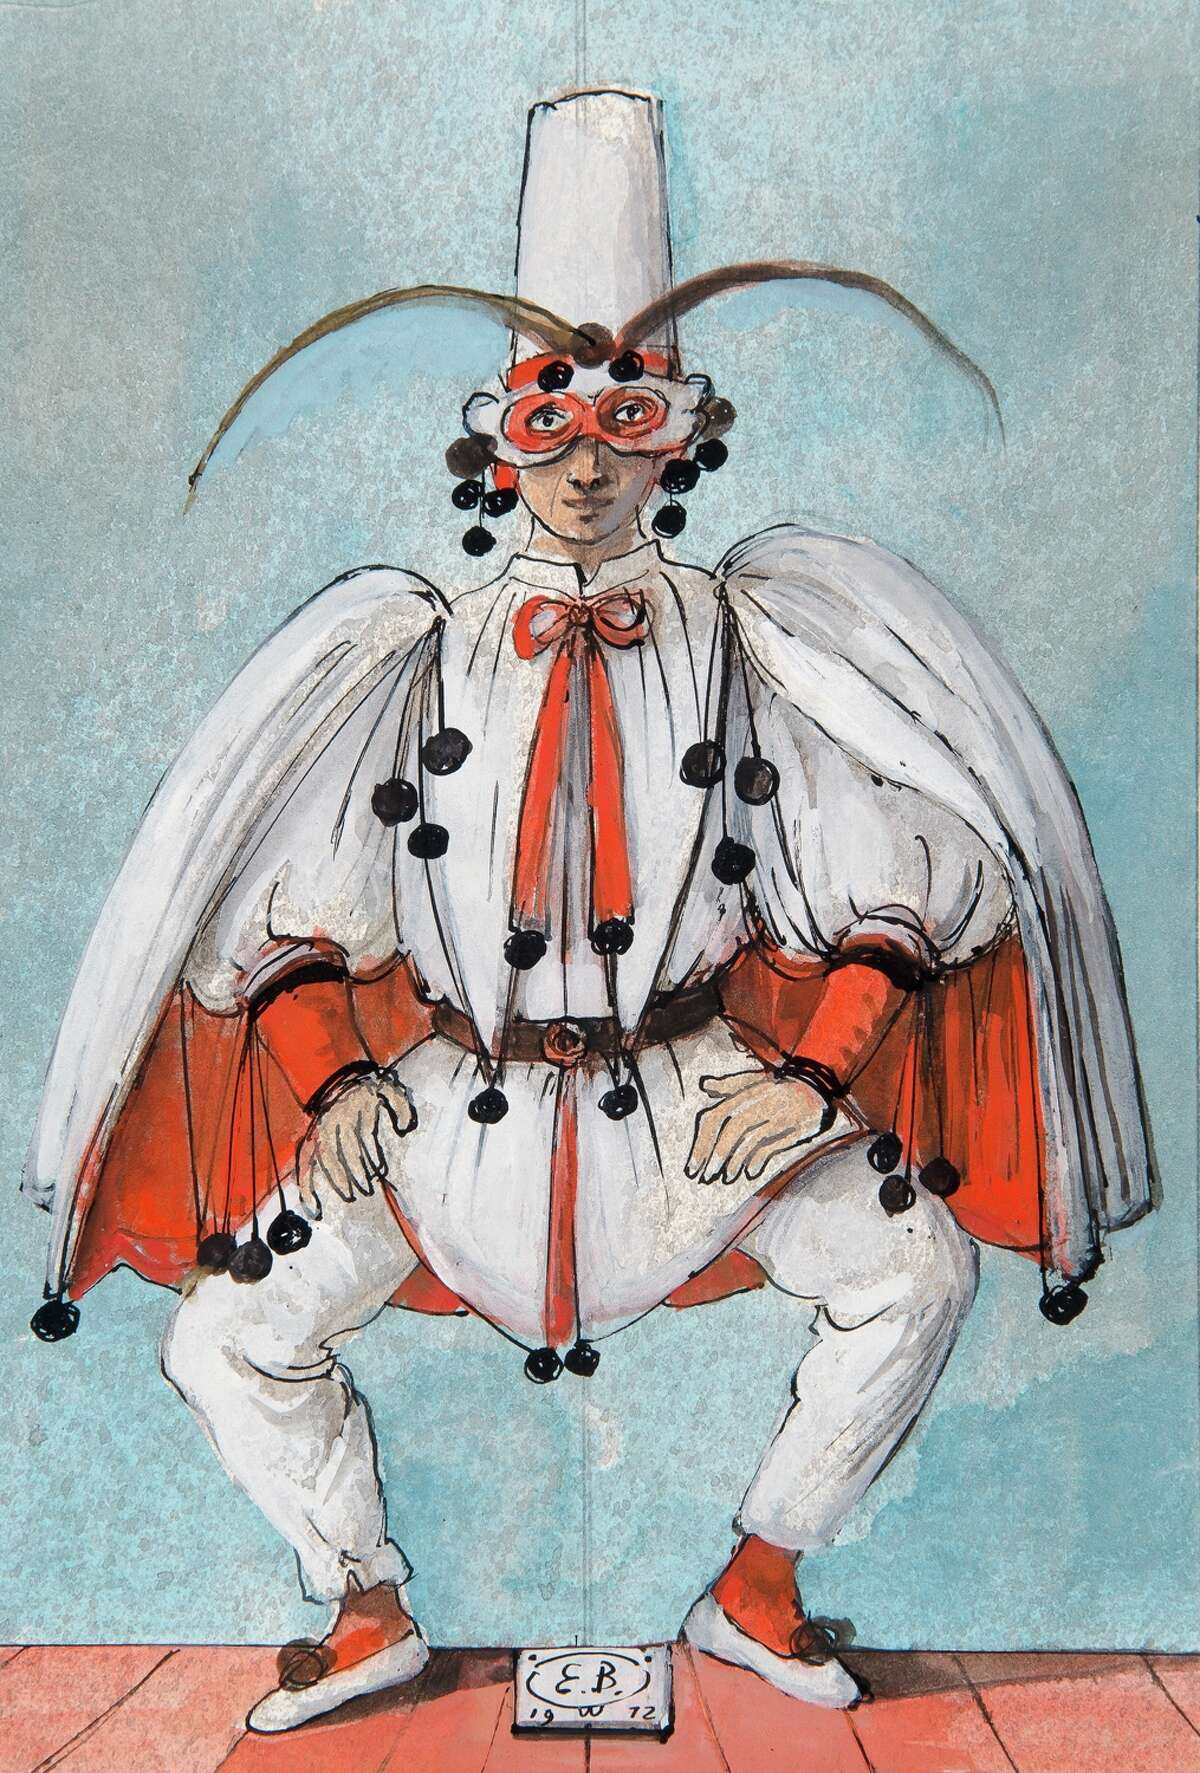 """Eugene Berman's costume design for """"Pulcinella,"""" 1972, is featured in """"Fiesta, Fete, Festival"""" at the McNay Art Museum."""